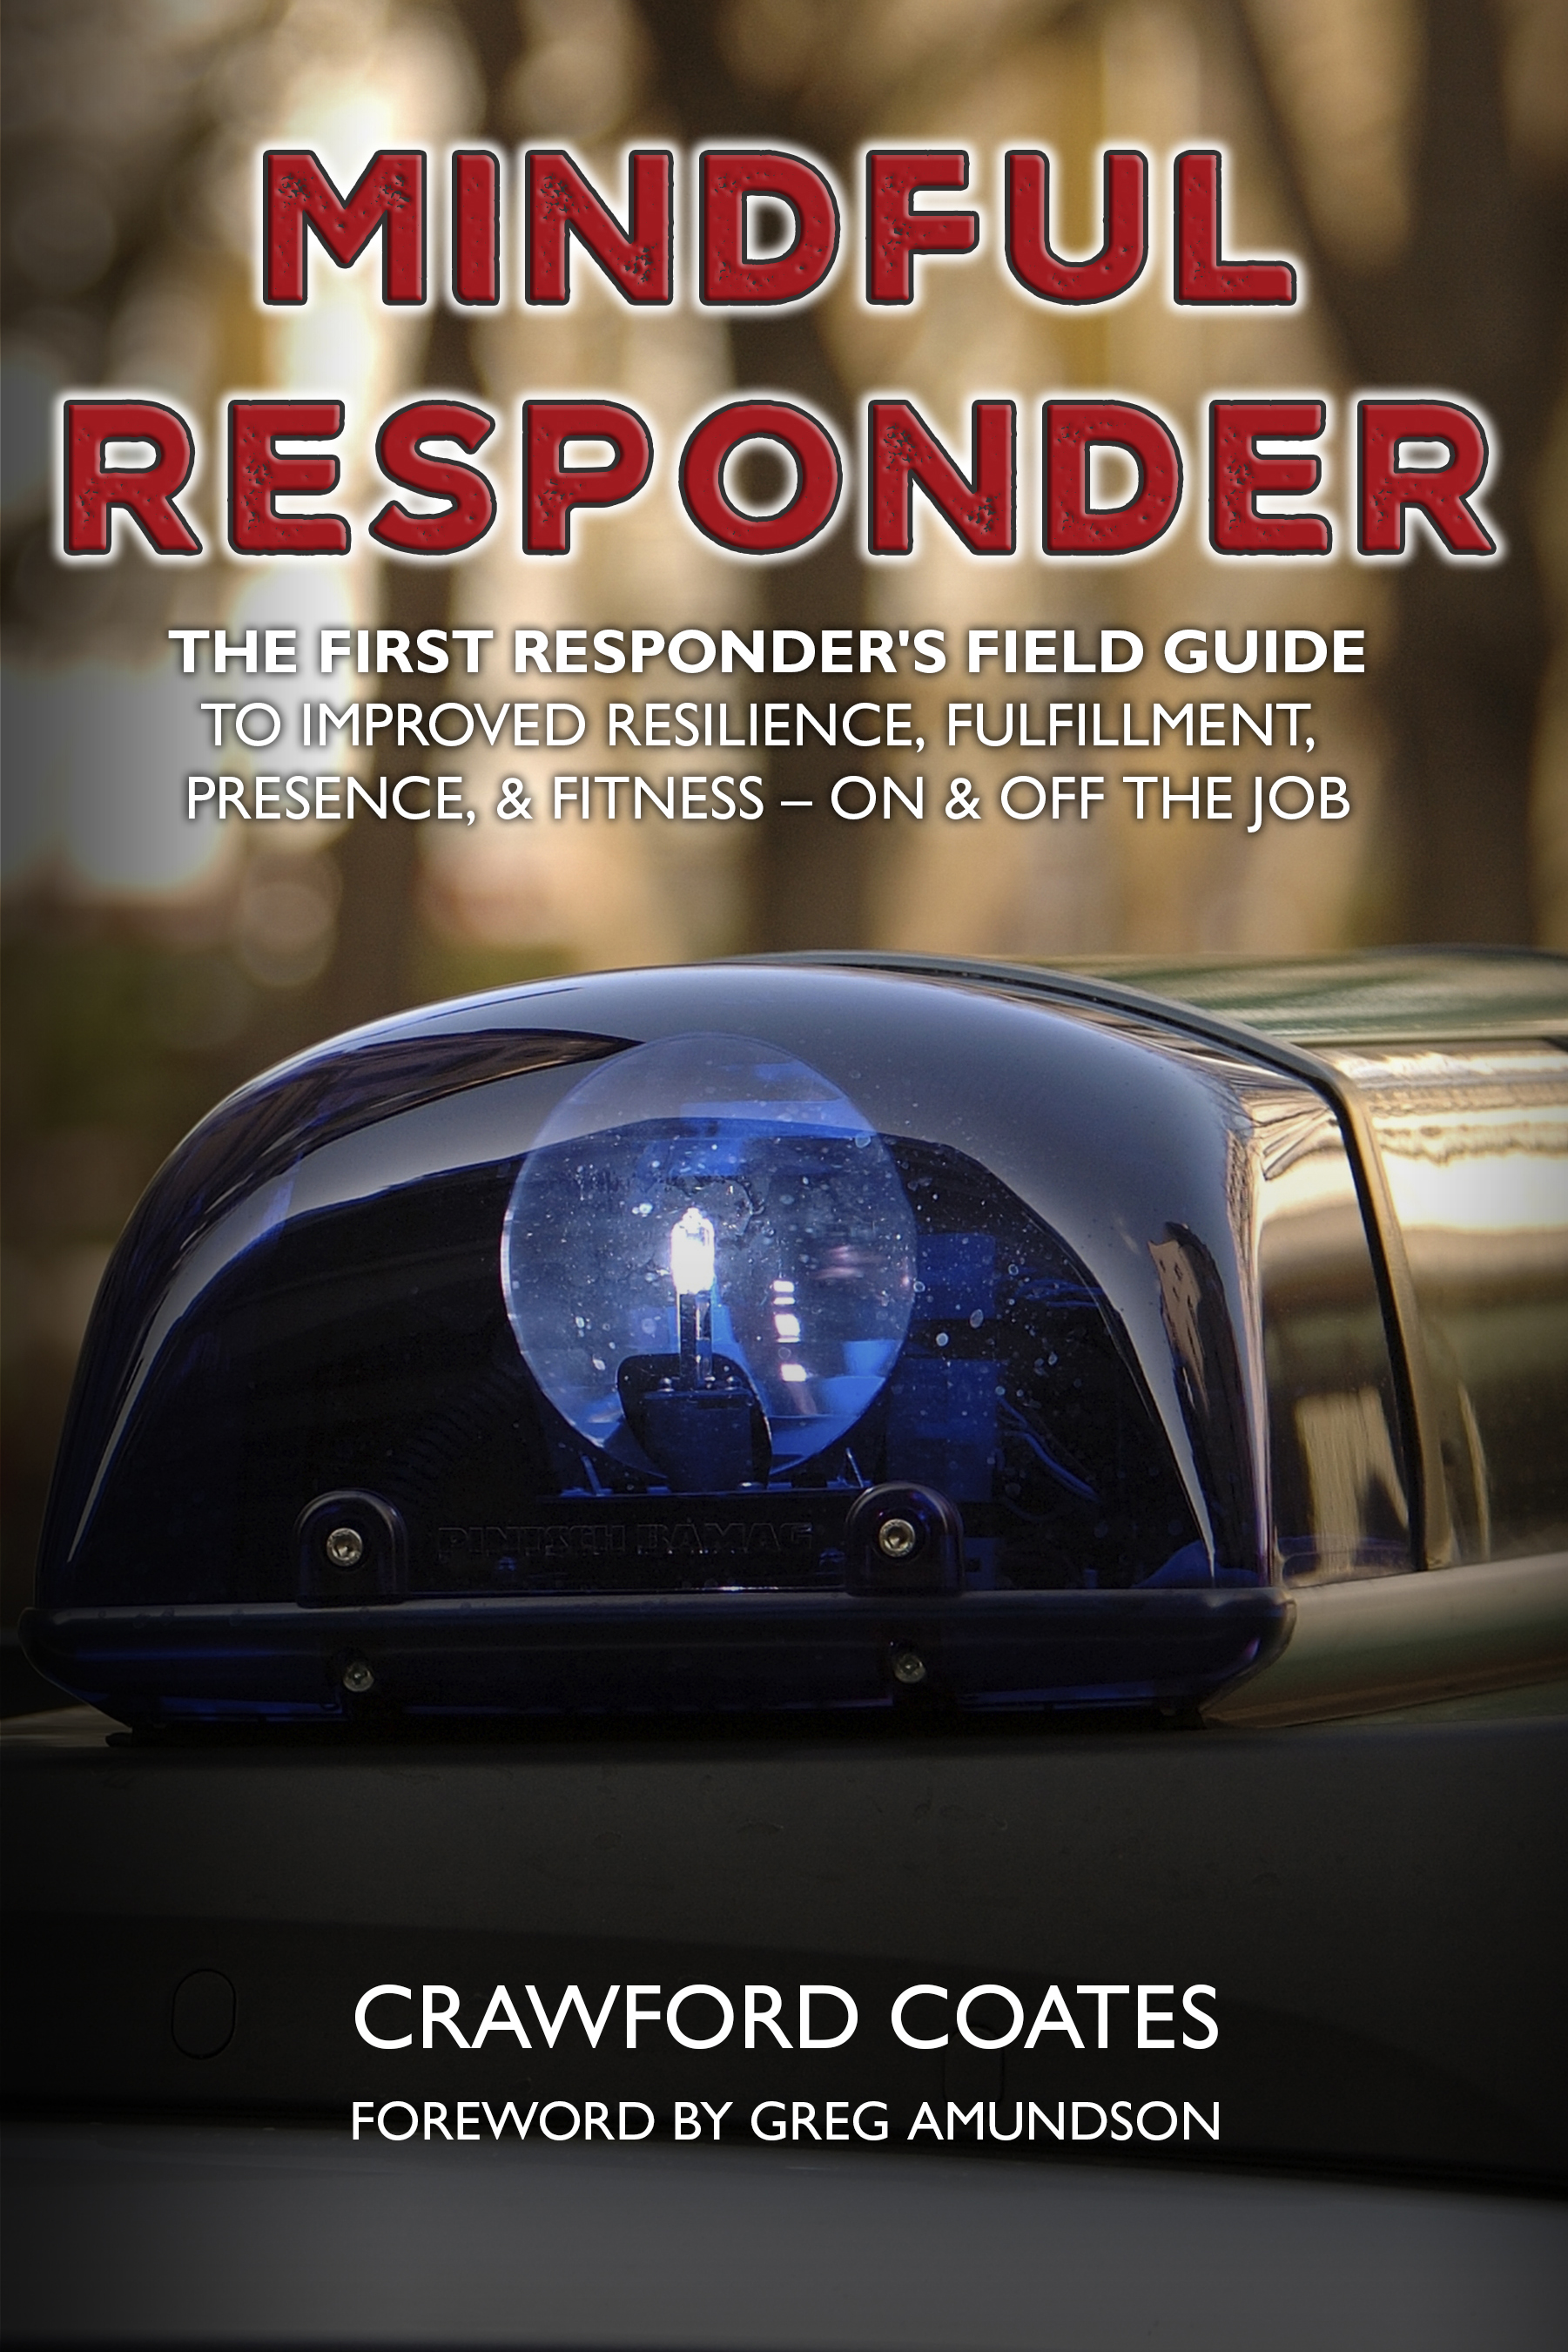 MINDFUL RESPONDER COVER V17 FC Only